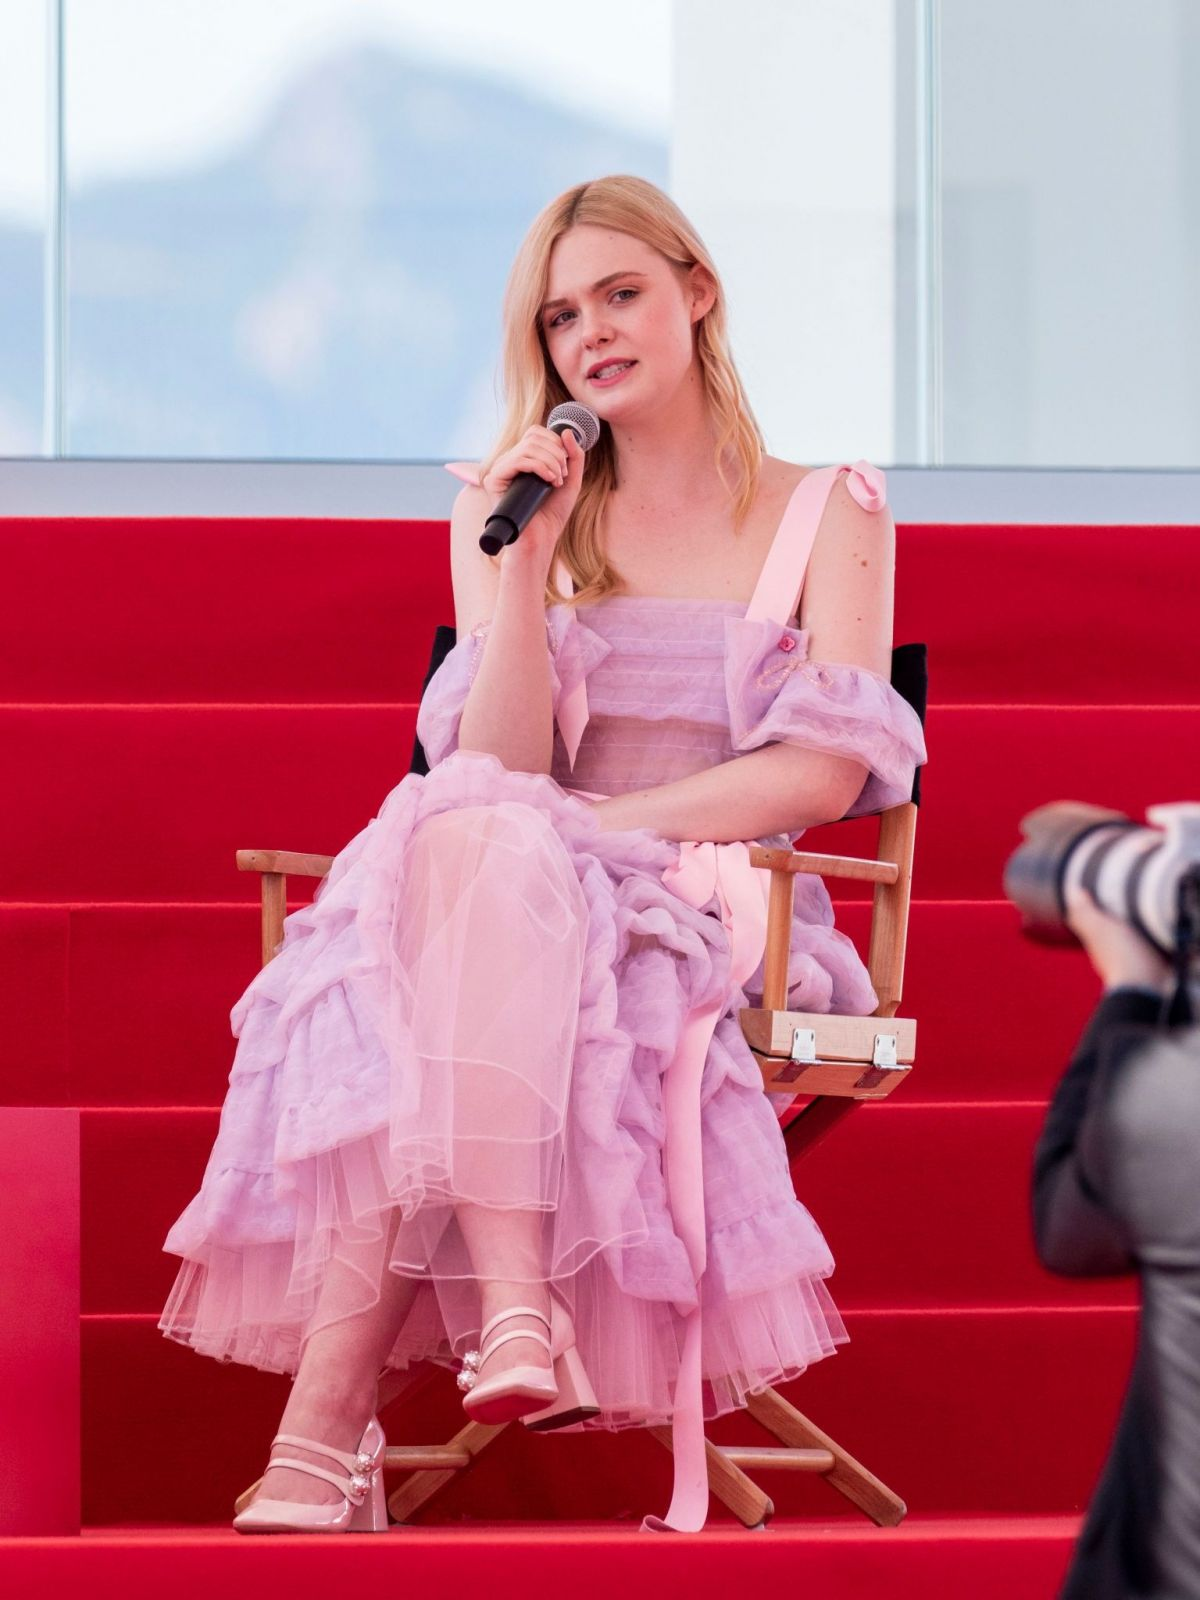 elle-fanning-at-an-interview-on-the-croisette-in-cannes-05-14-2019-4.jpg